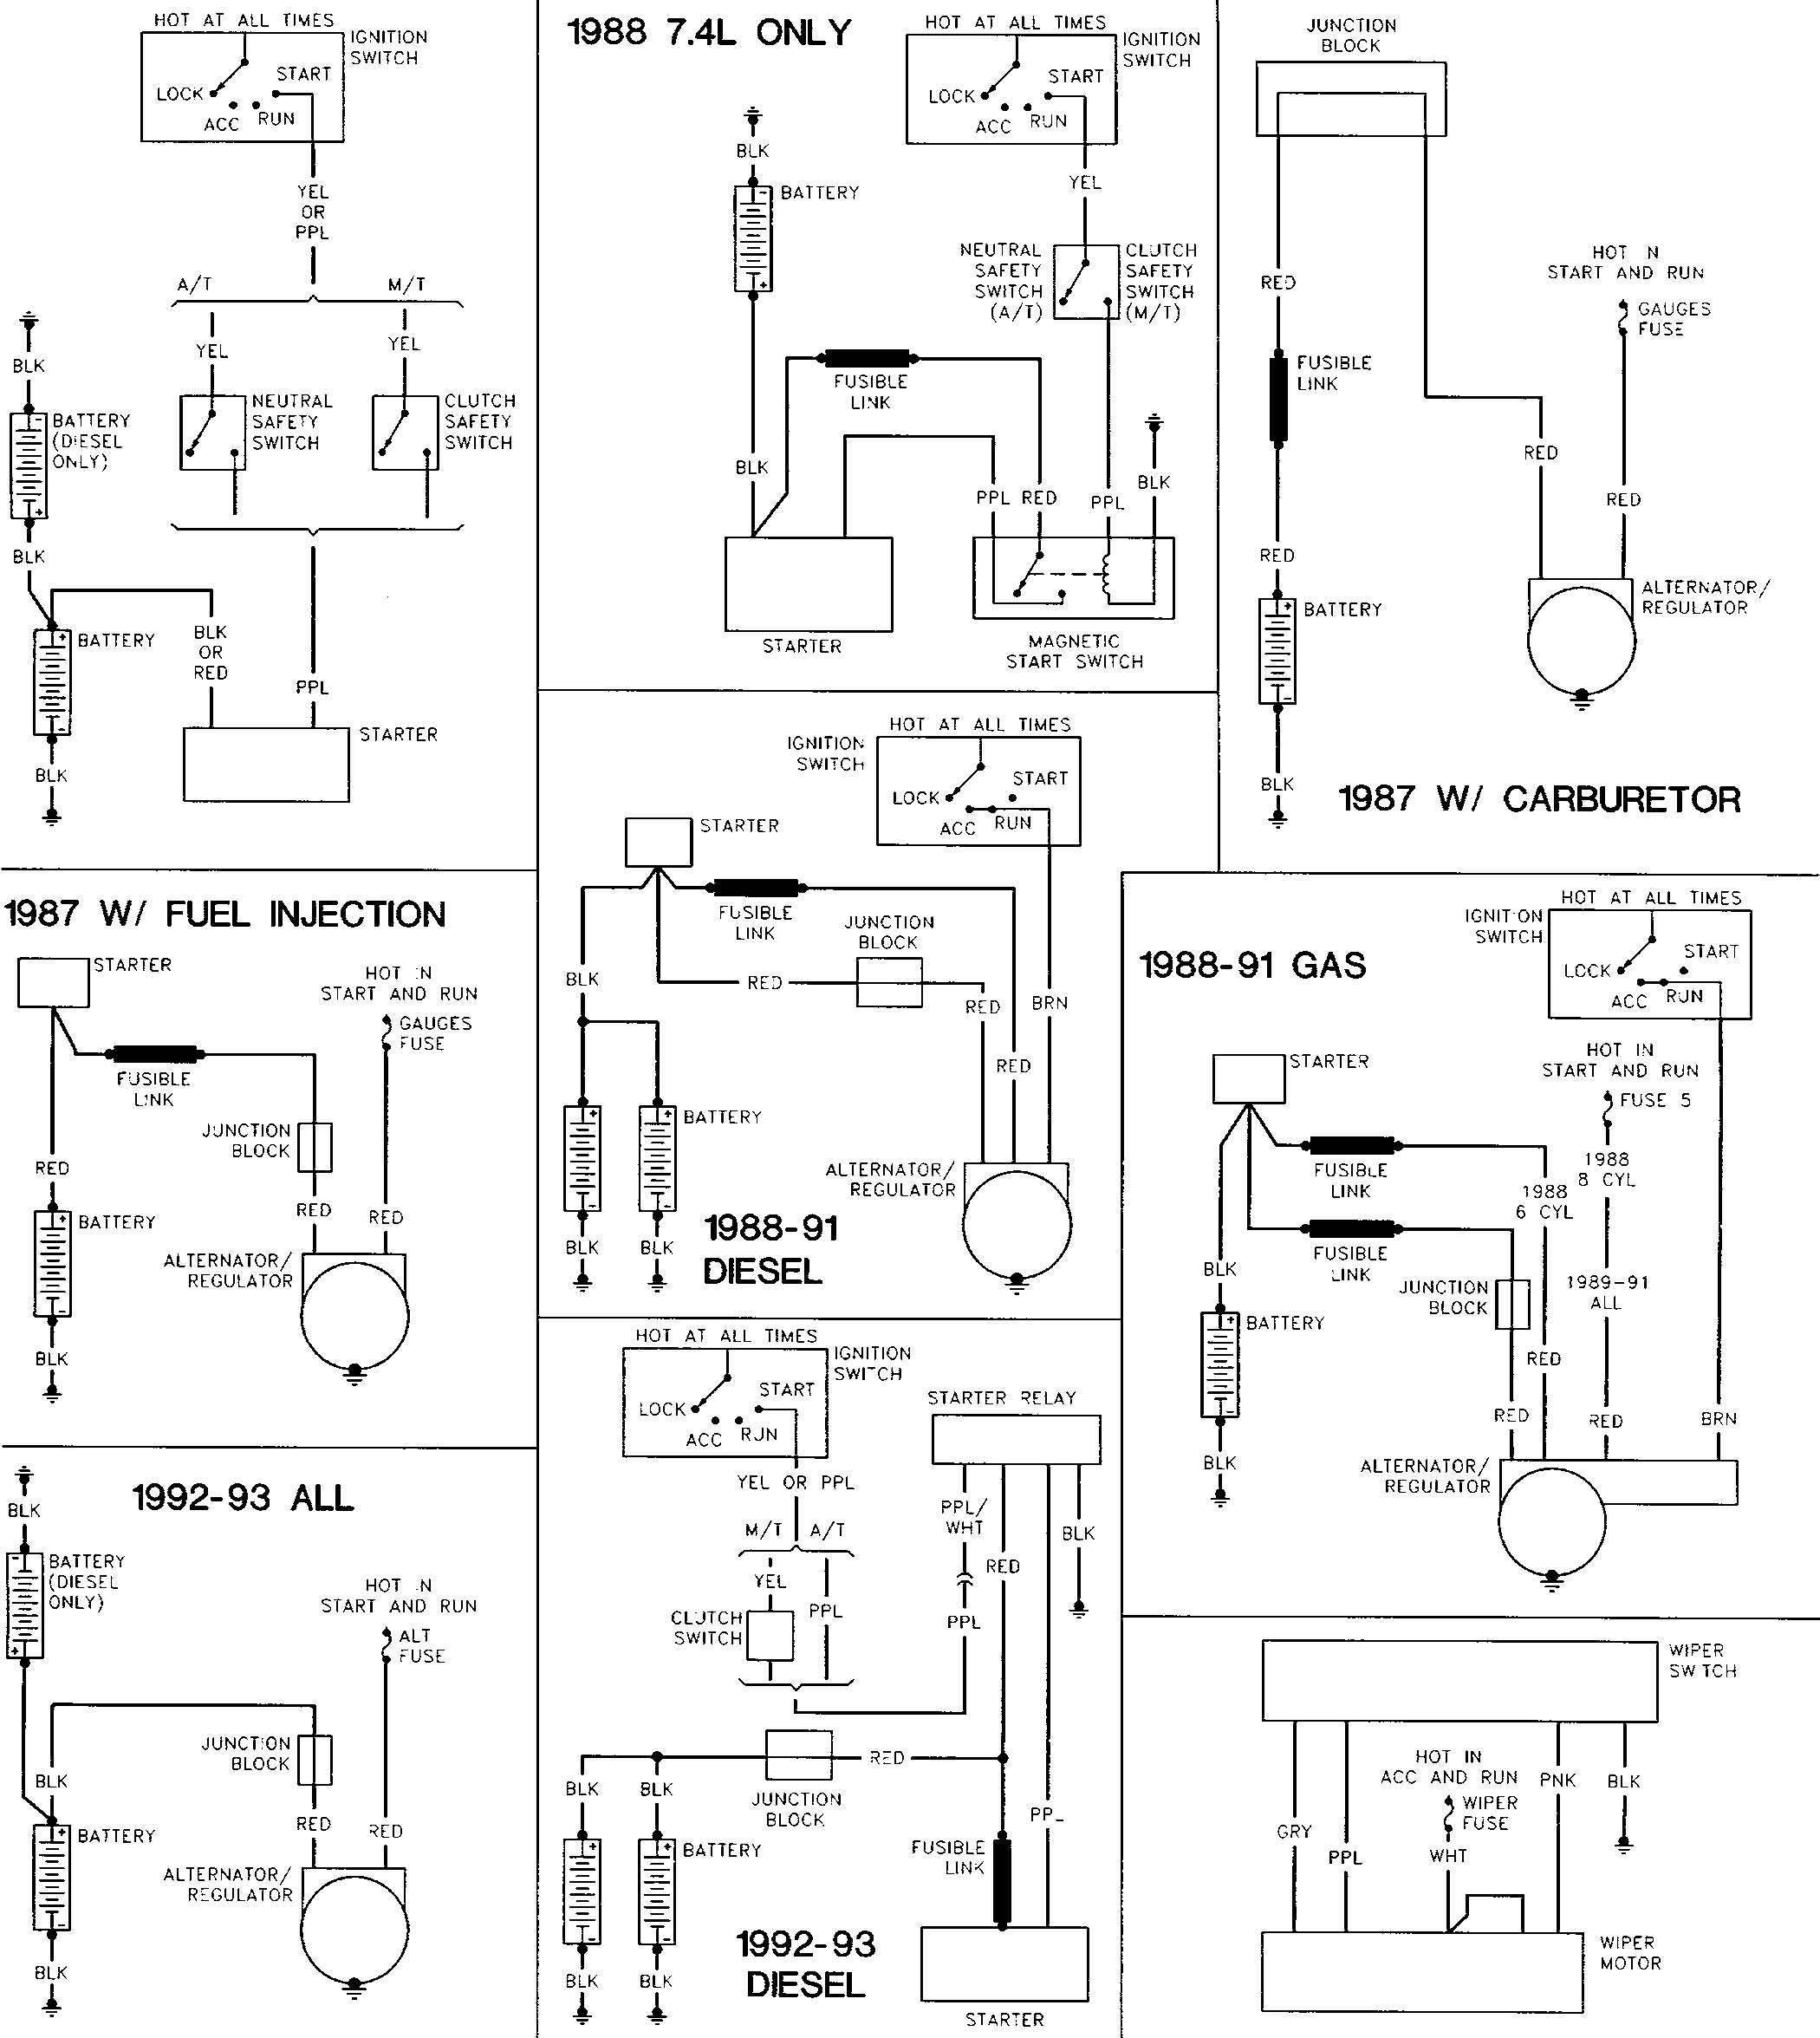 gulfstream wiring diagrams wiring diagram third level King Cobra Diagram gulfstream wiring diagram wiring diagram todays model t diagram gulfstream wiring diagrams